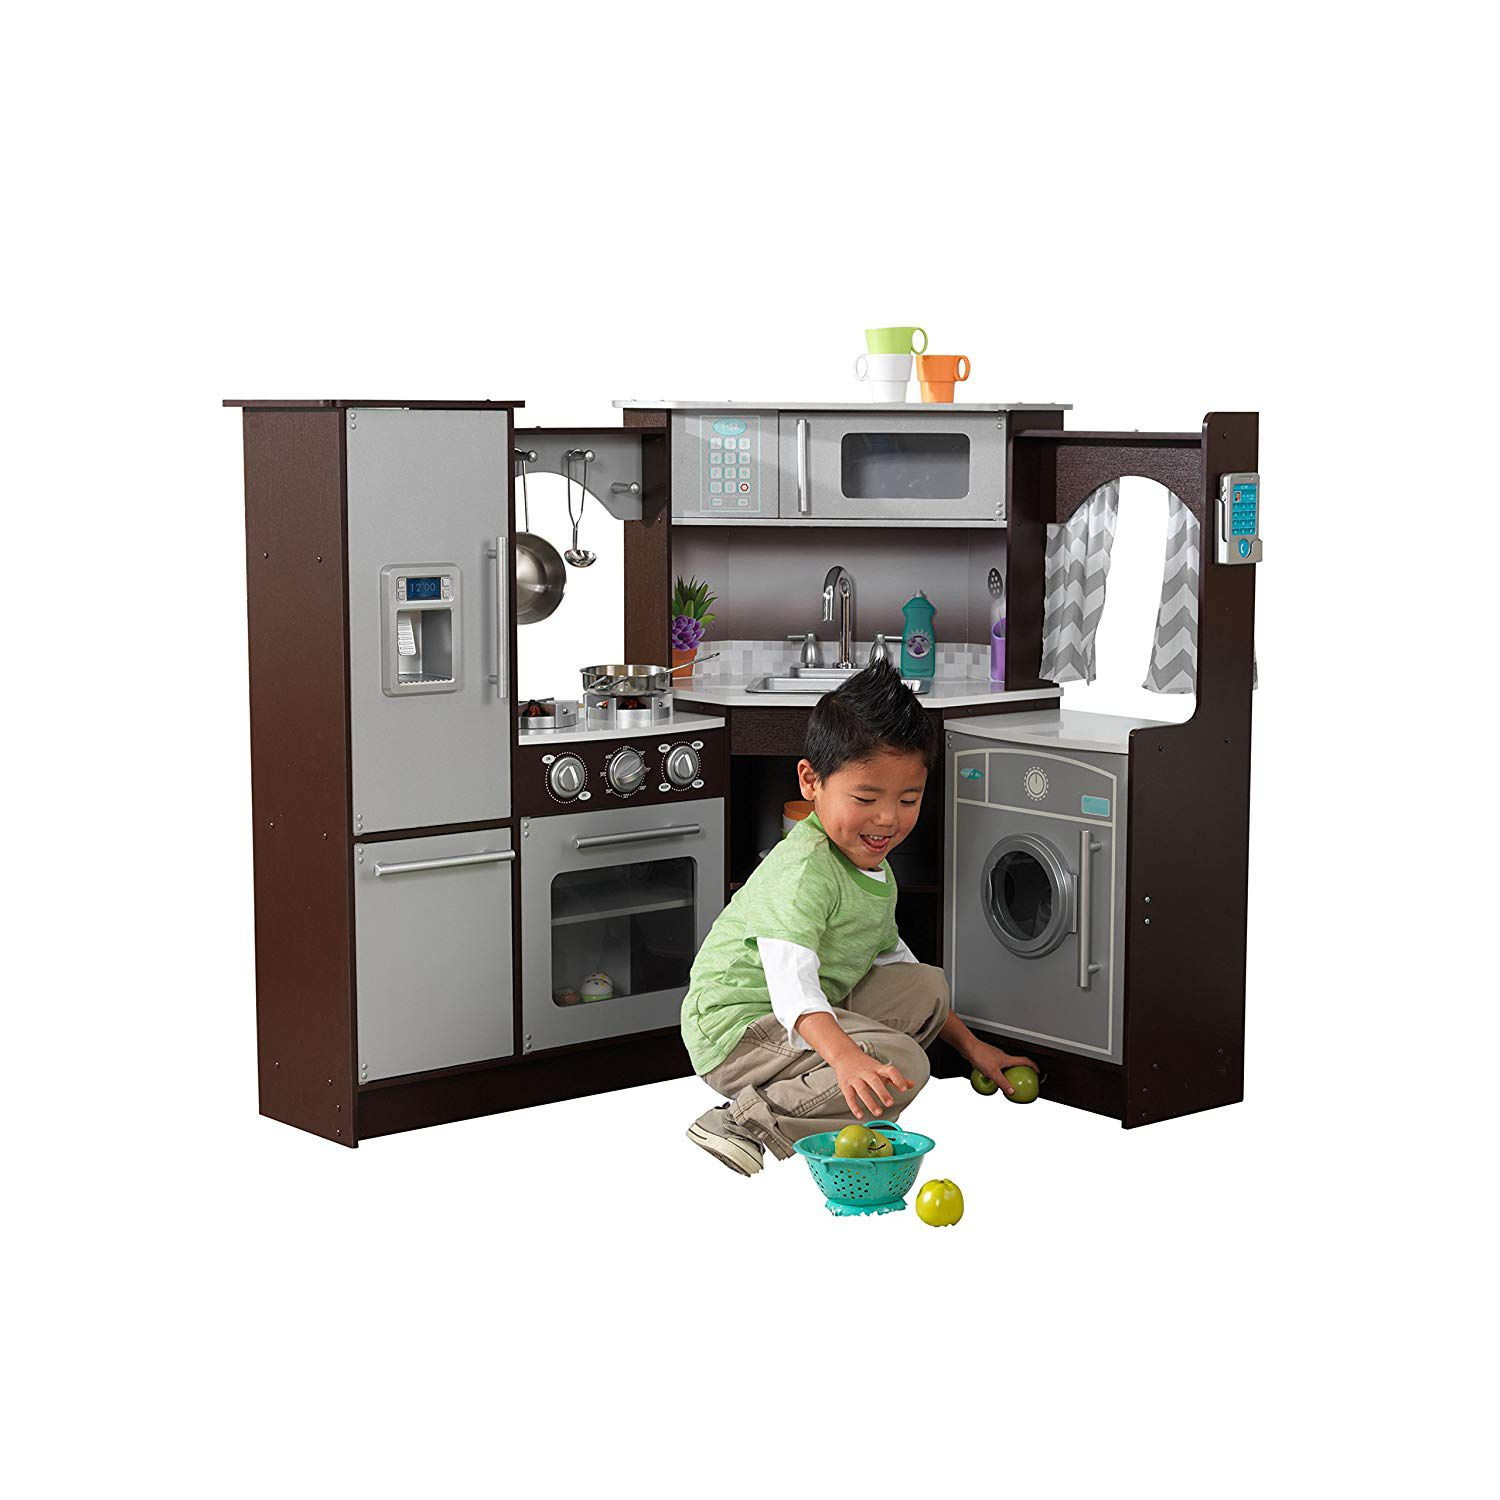 Kitchen Set For New Home: The 8 Best Kitchen Sets For Kids In 2019